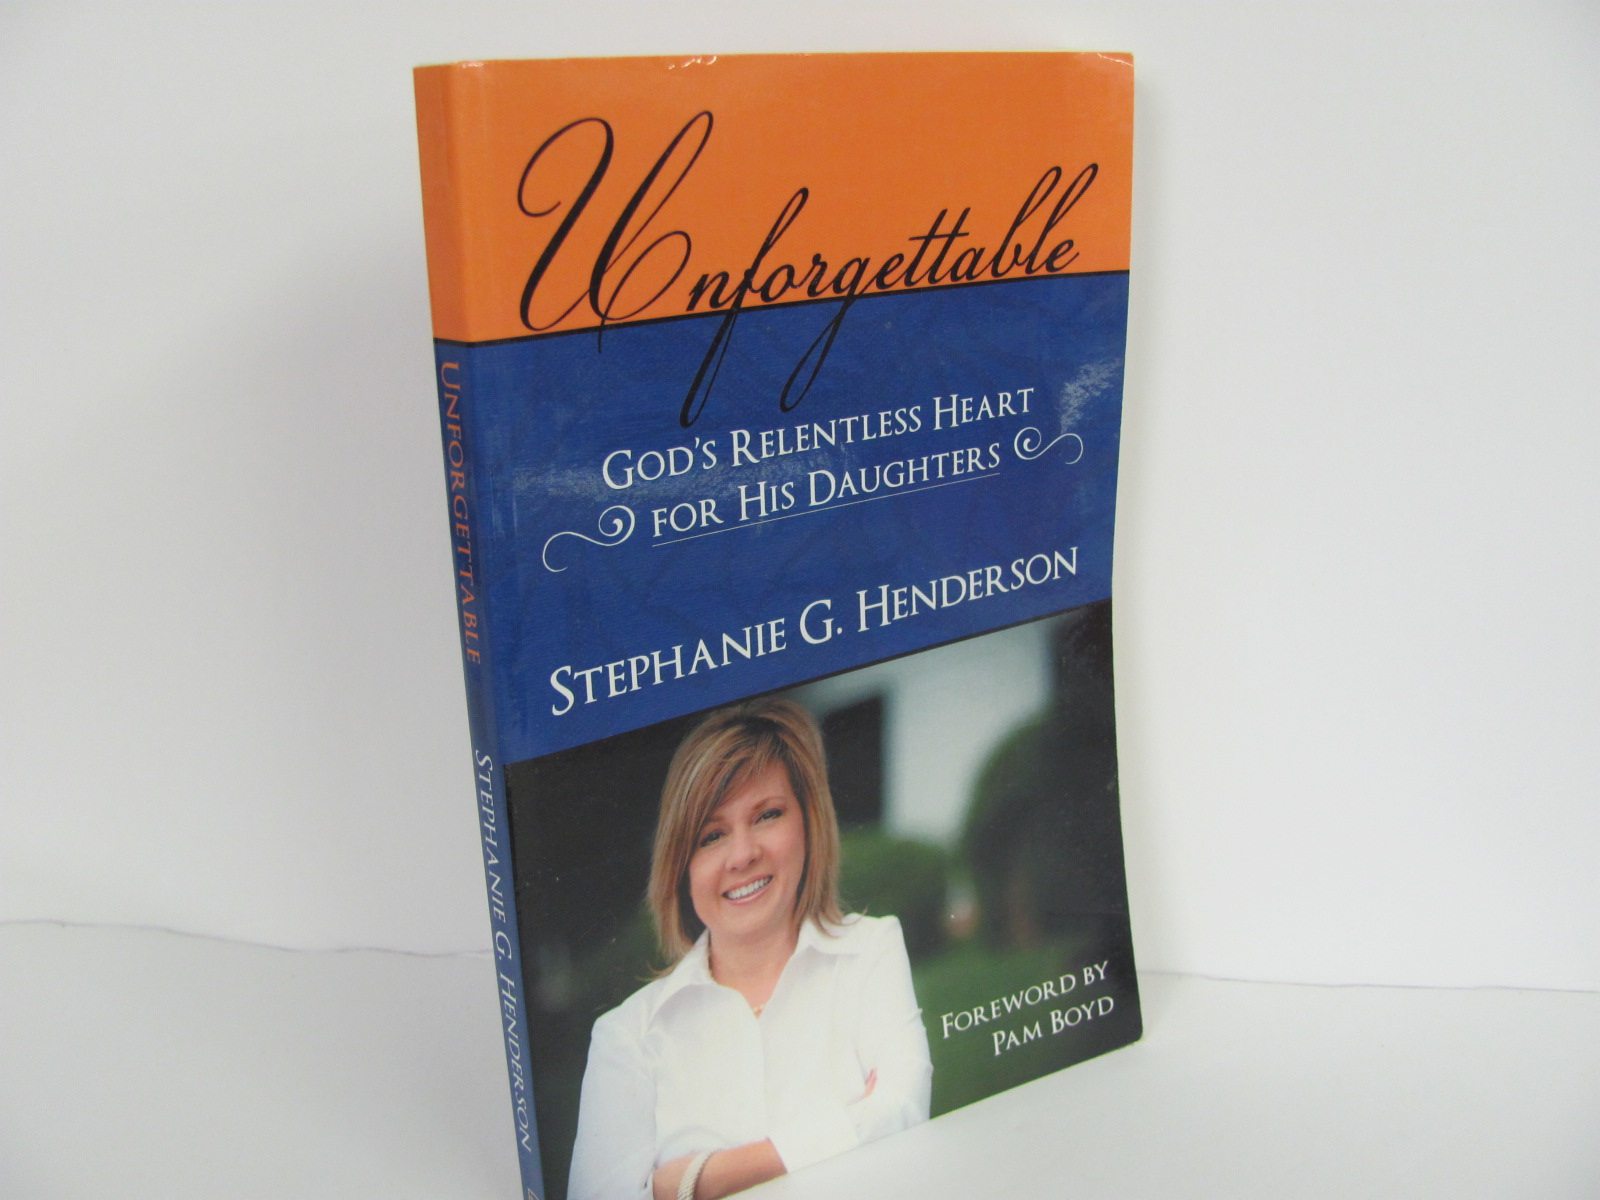 Crossbooks-Unforgettable-Used-Parent_315288A.jpg